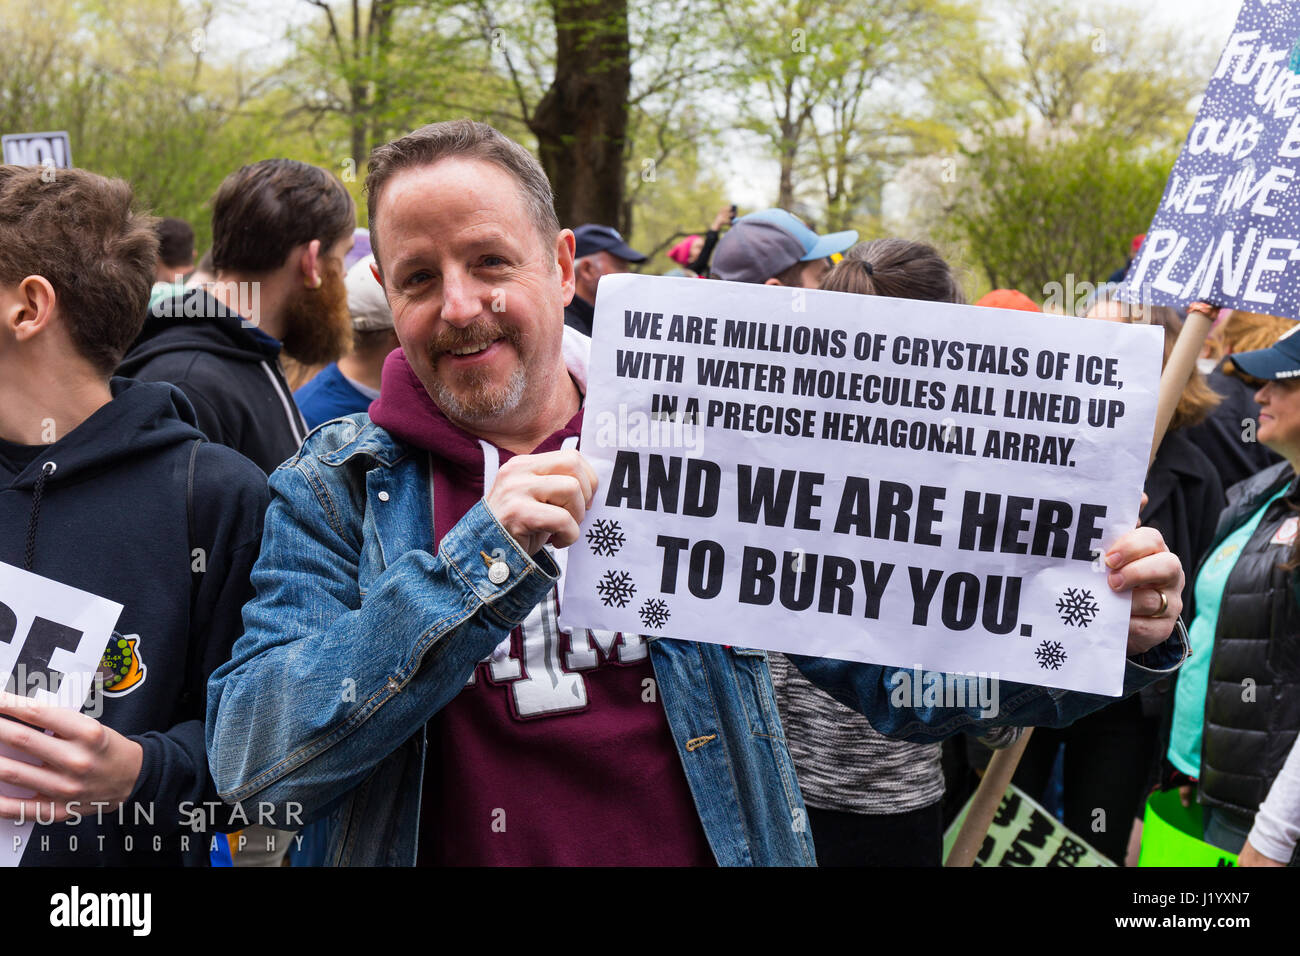 New York, USA. 22nd April, 2017. An unidentified man holds a humorous sign that references the derisive use of the Stock Photo